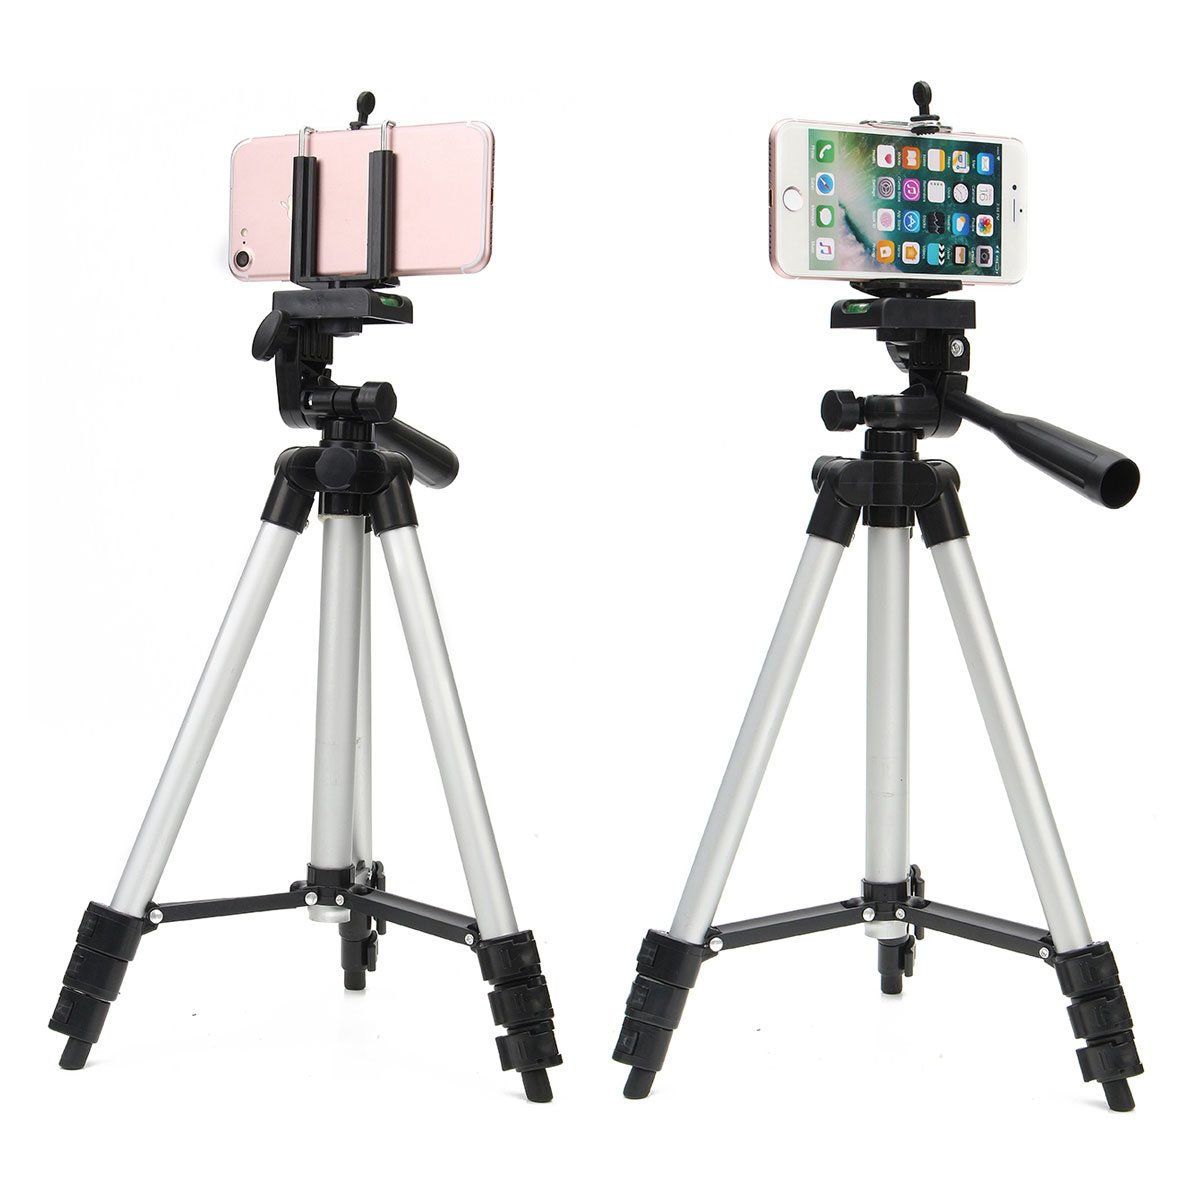 Bakeey Professional Camera Adjustable Tripod Stand Holder Live Selfie Stick for iPhone 8 Plus X S8 S